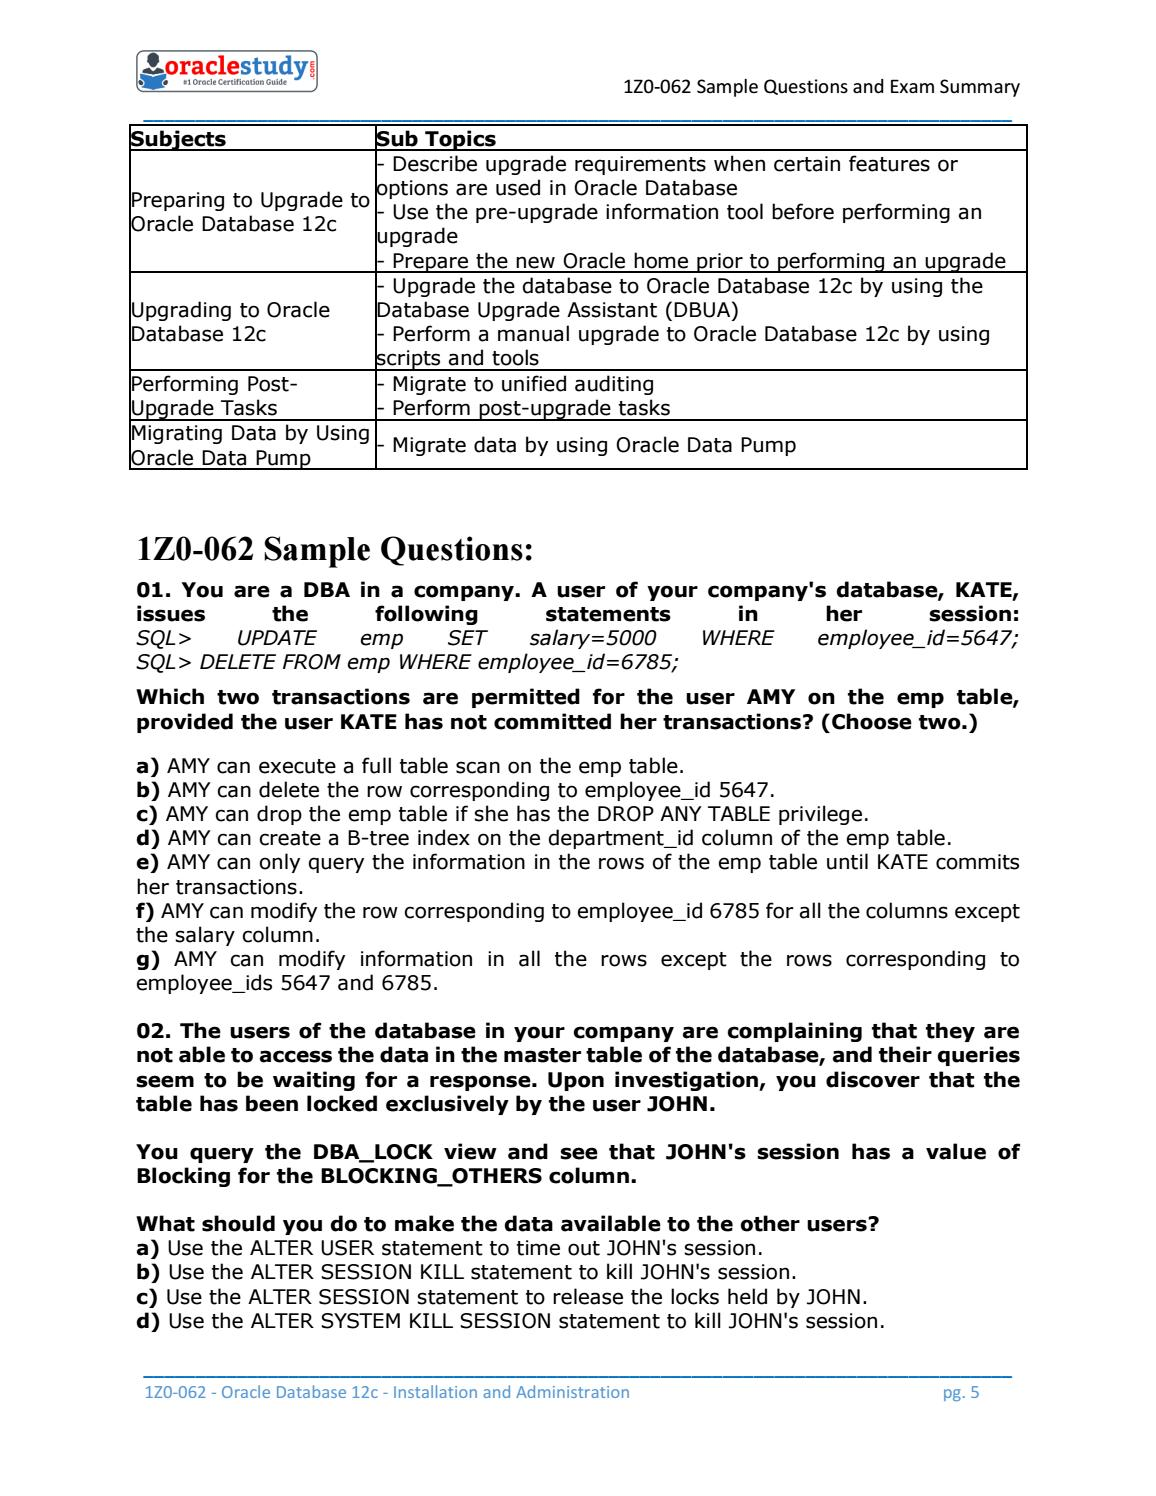 How to Prepare for 1Z0-062 exam on Oracle Database 12c by Alice ...